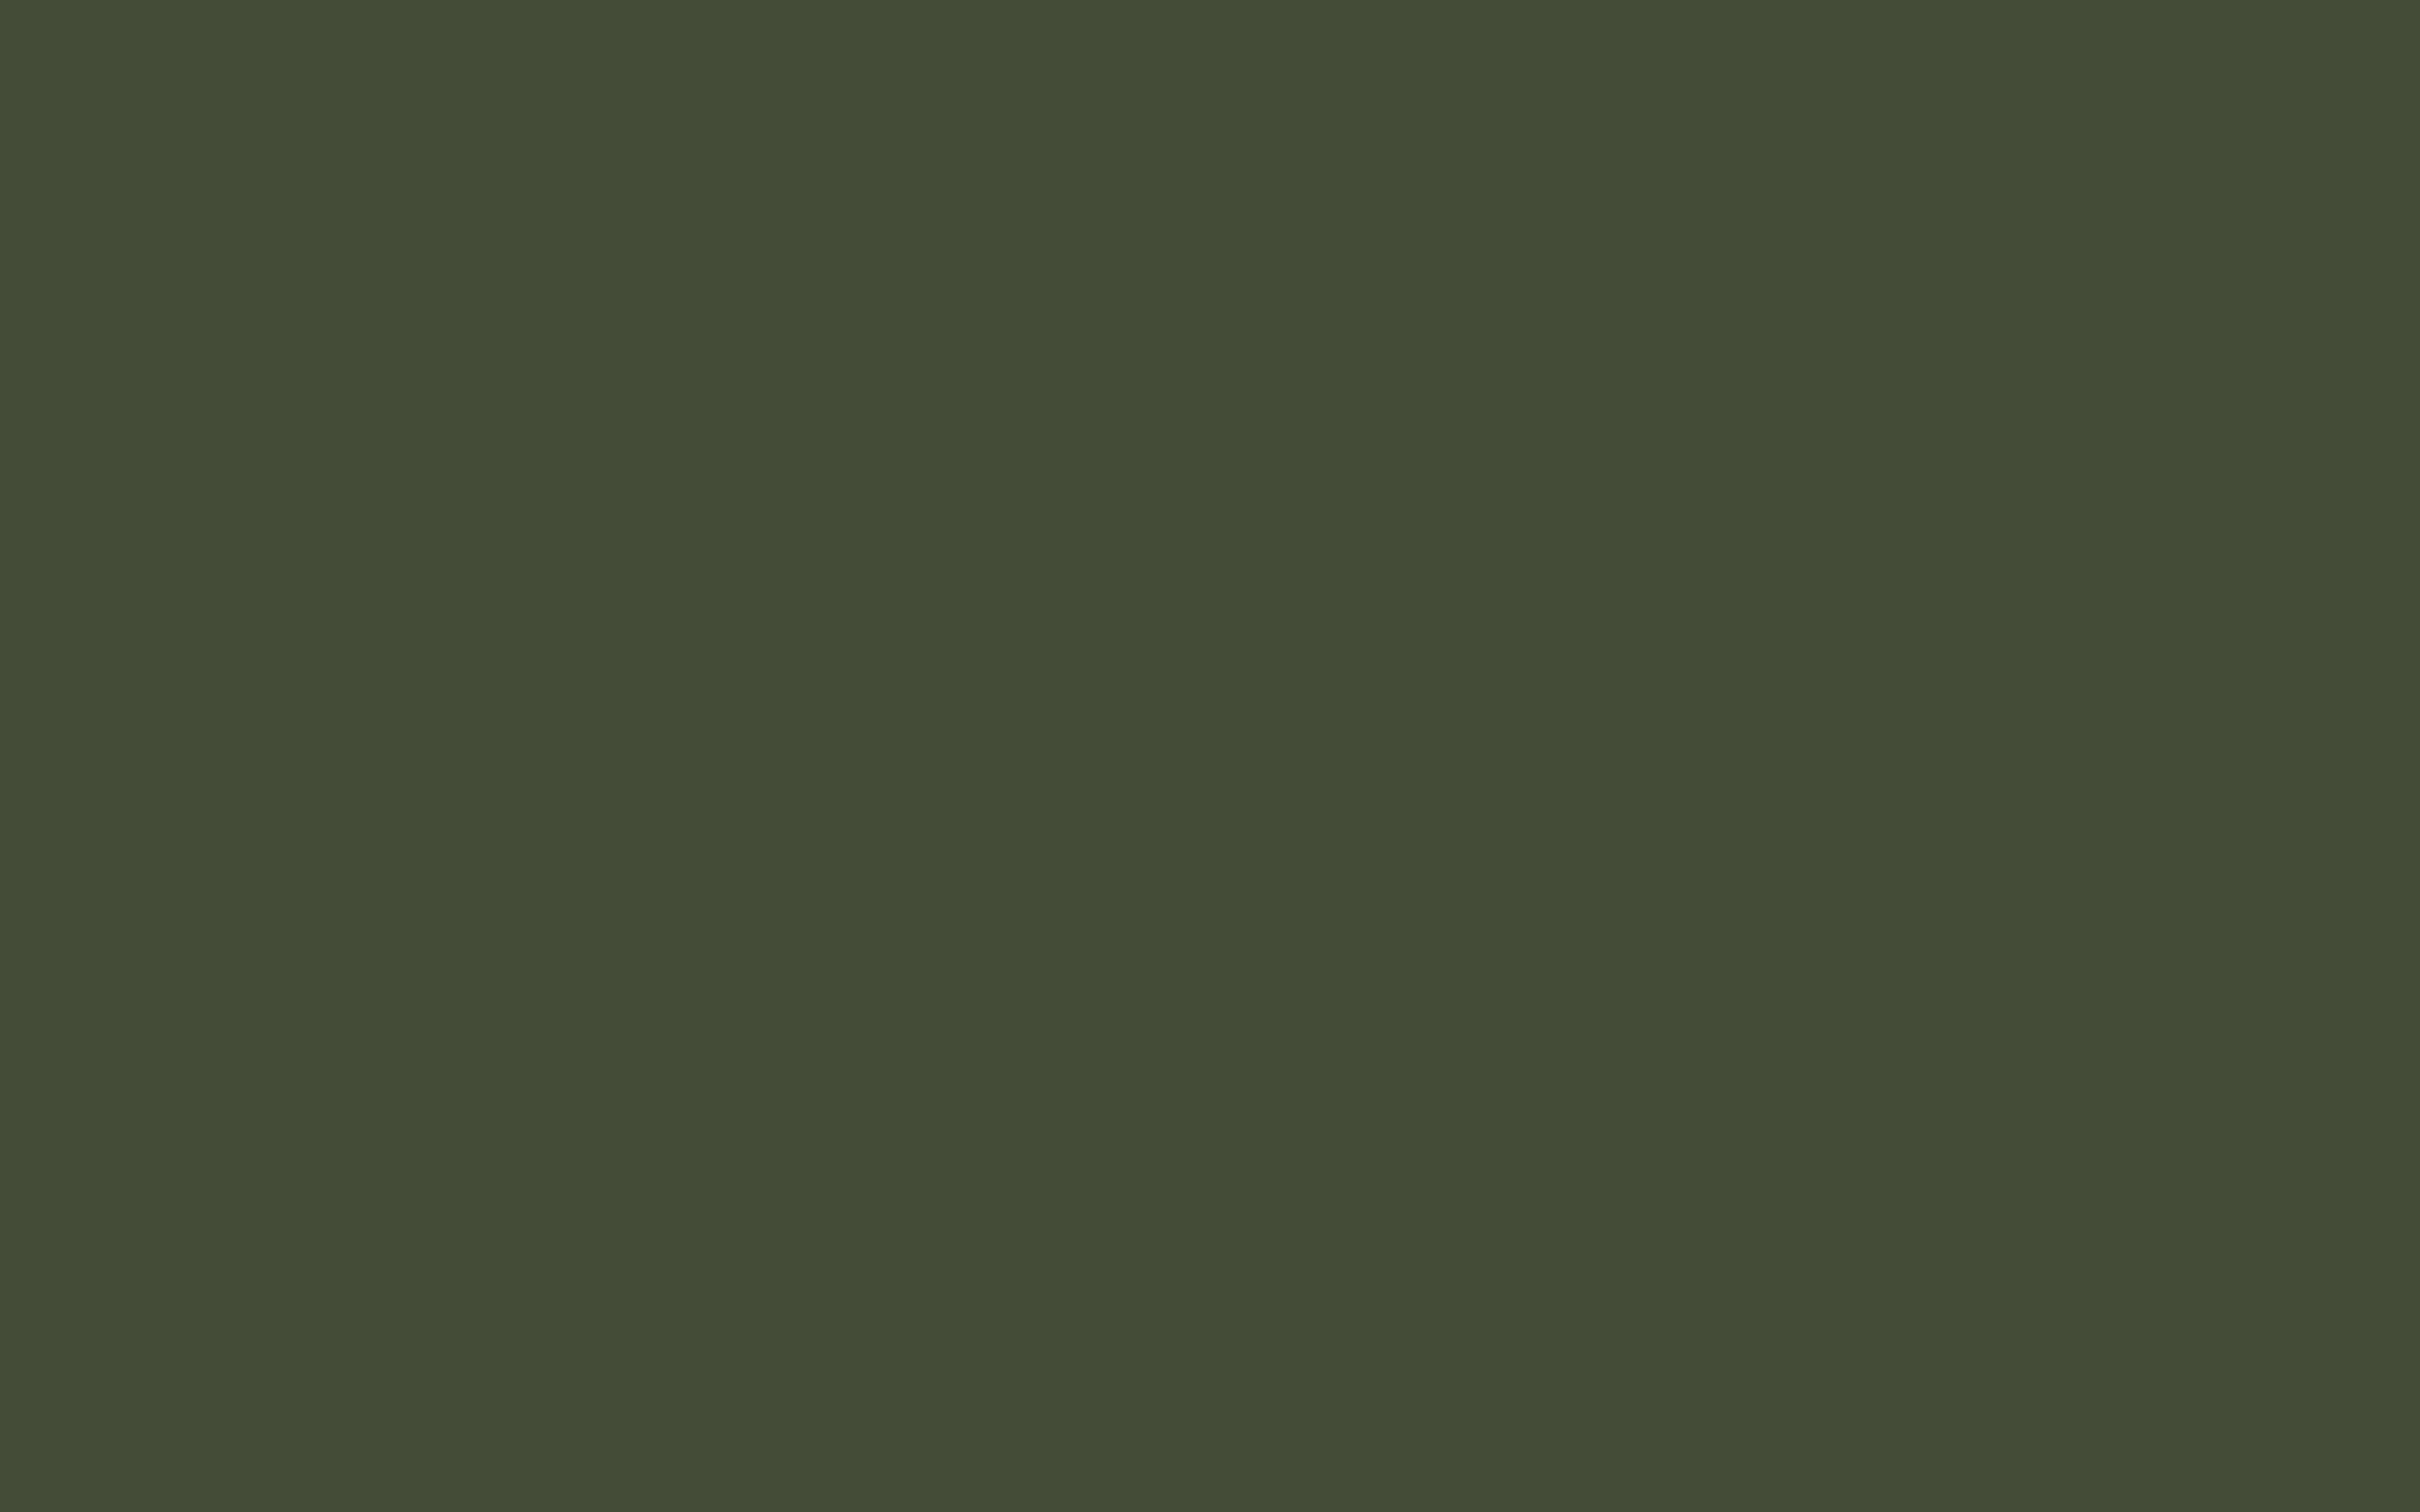 2560x1600 Rifle Green Solid Color Background